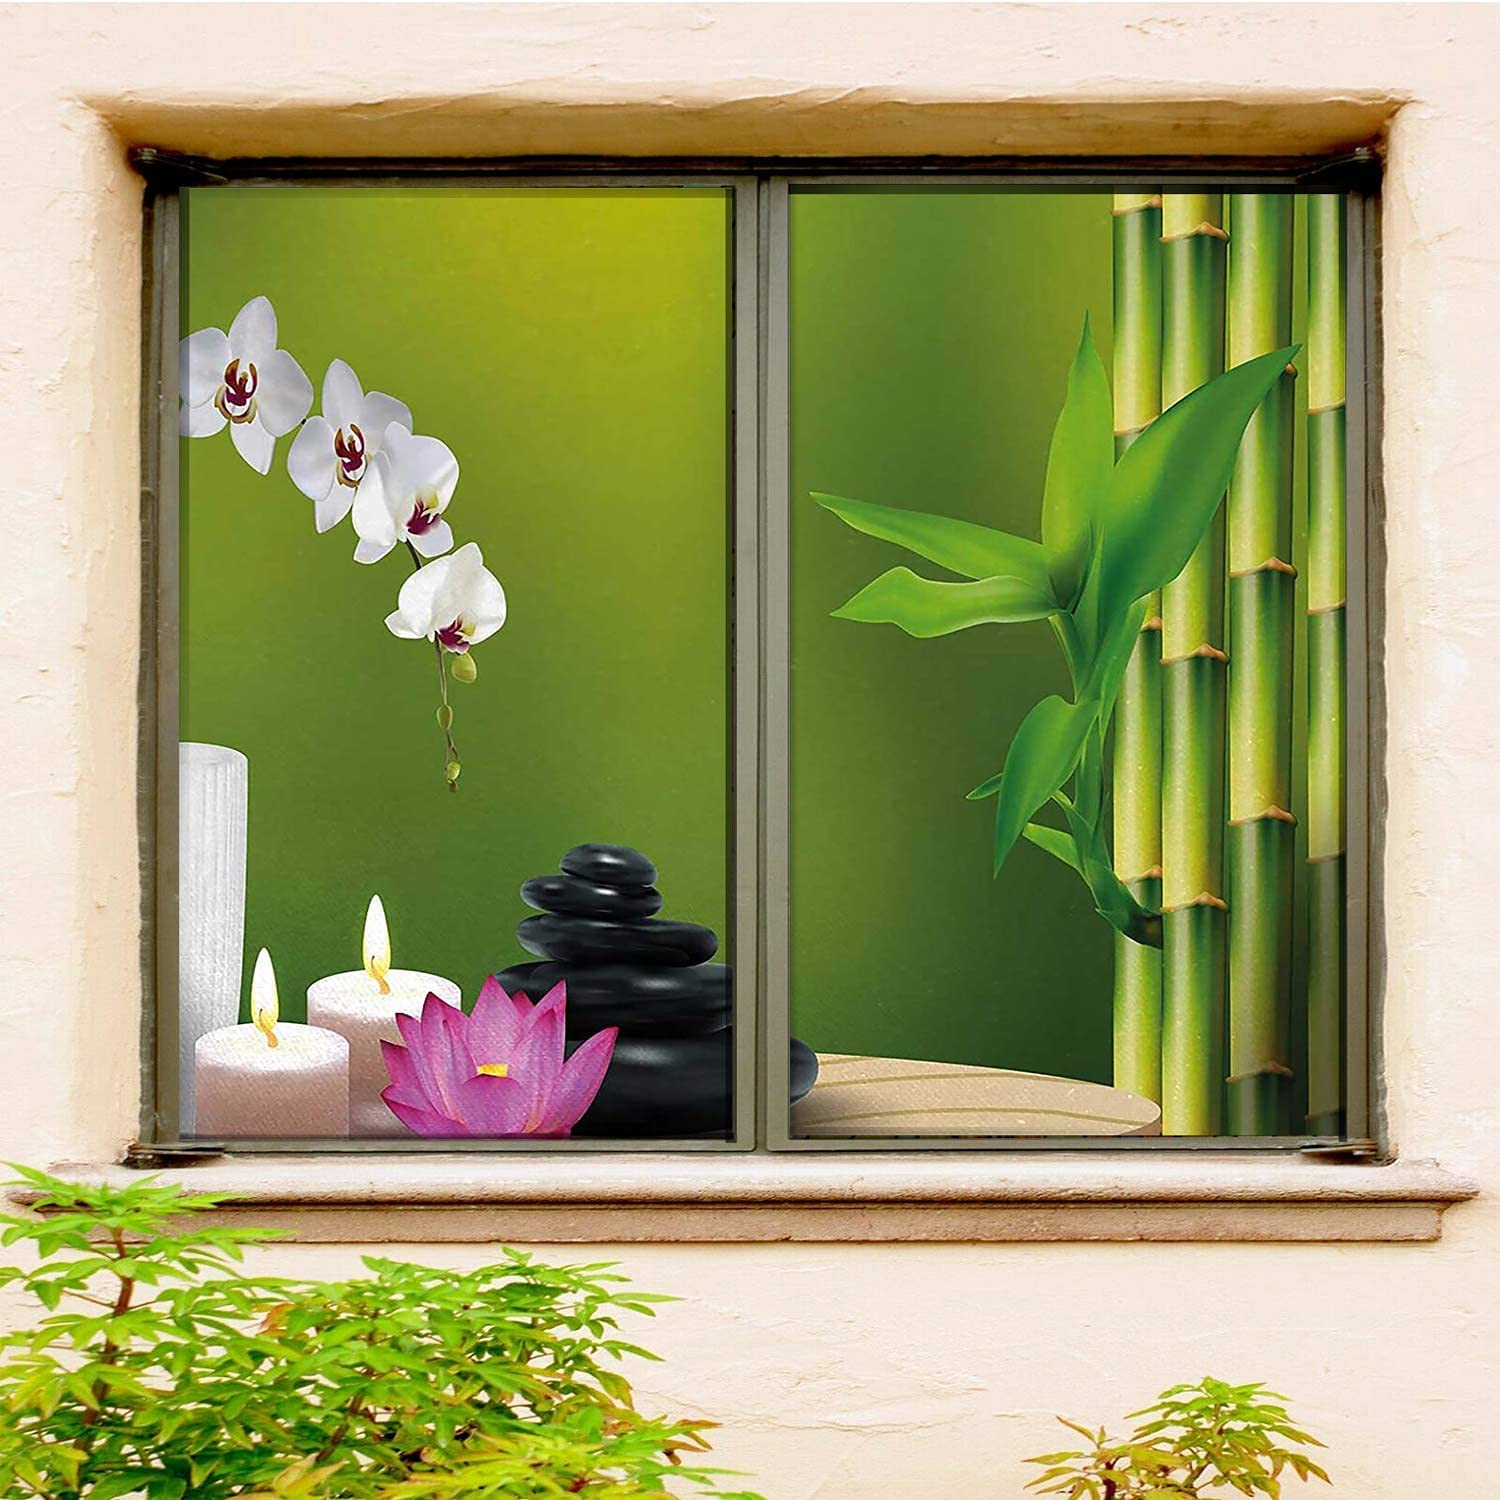 Spa Privacy Window Film 2 Recommended PCS Fuchsia Fern Heat White Max 86% OFF Green Set